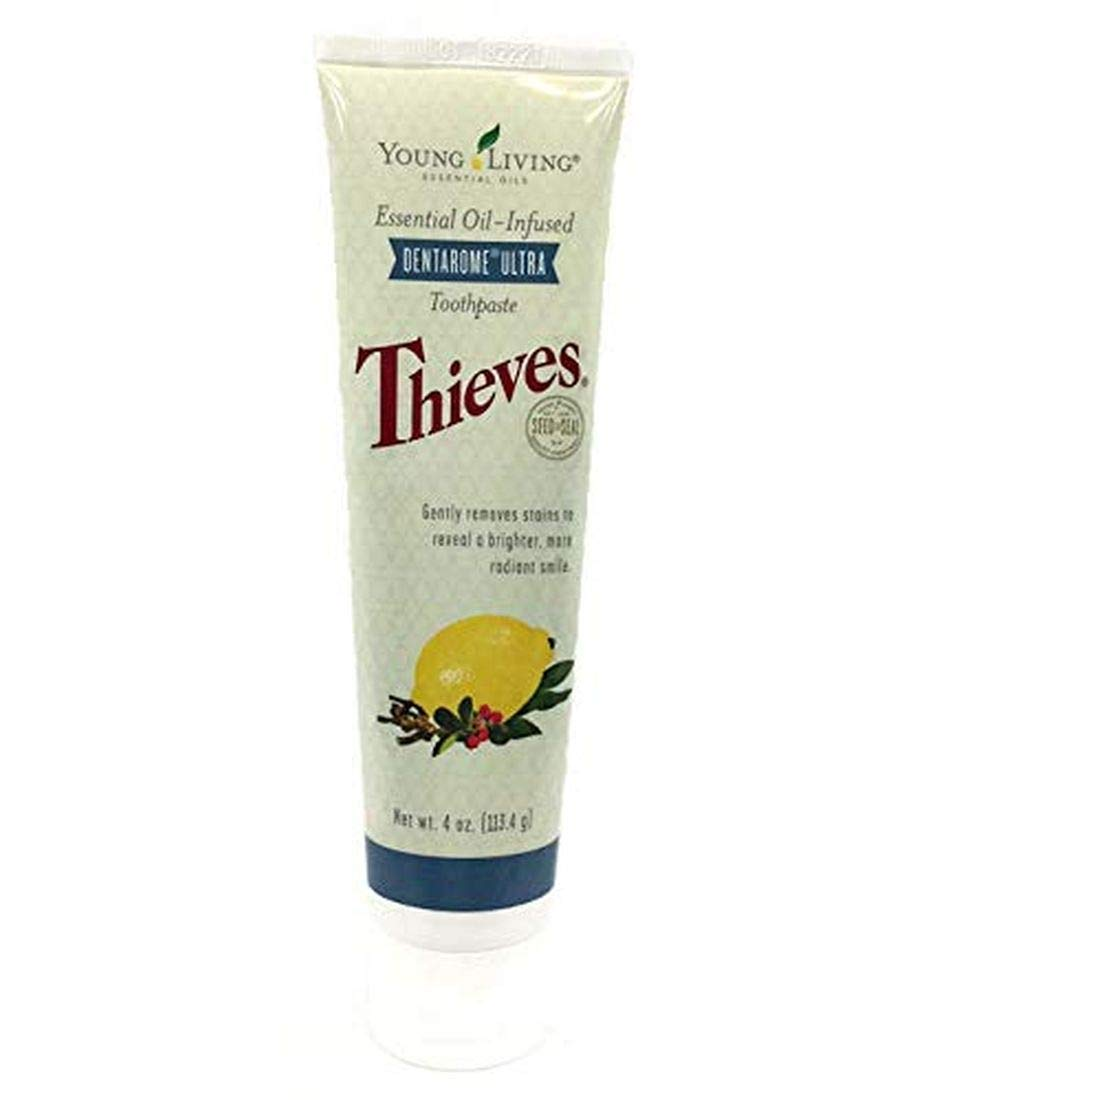 Young Living Thieves Dentarome Ultra Toothpaste with Xylitol, 4.1 oz